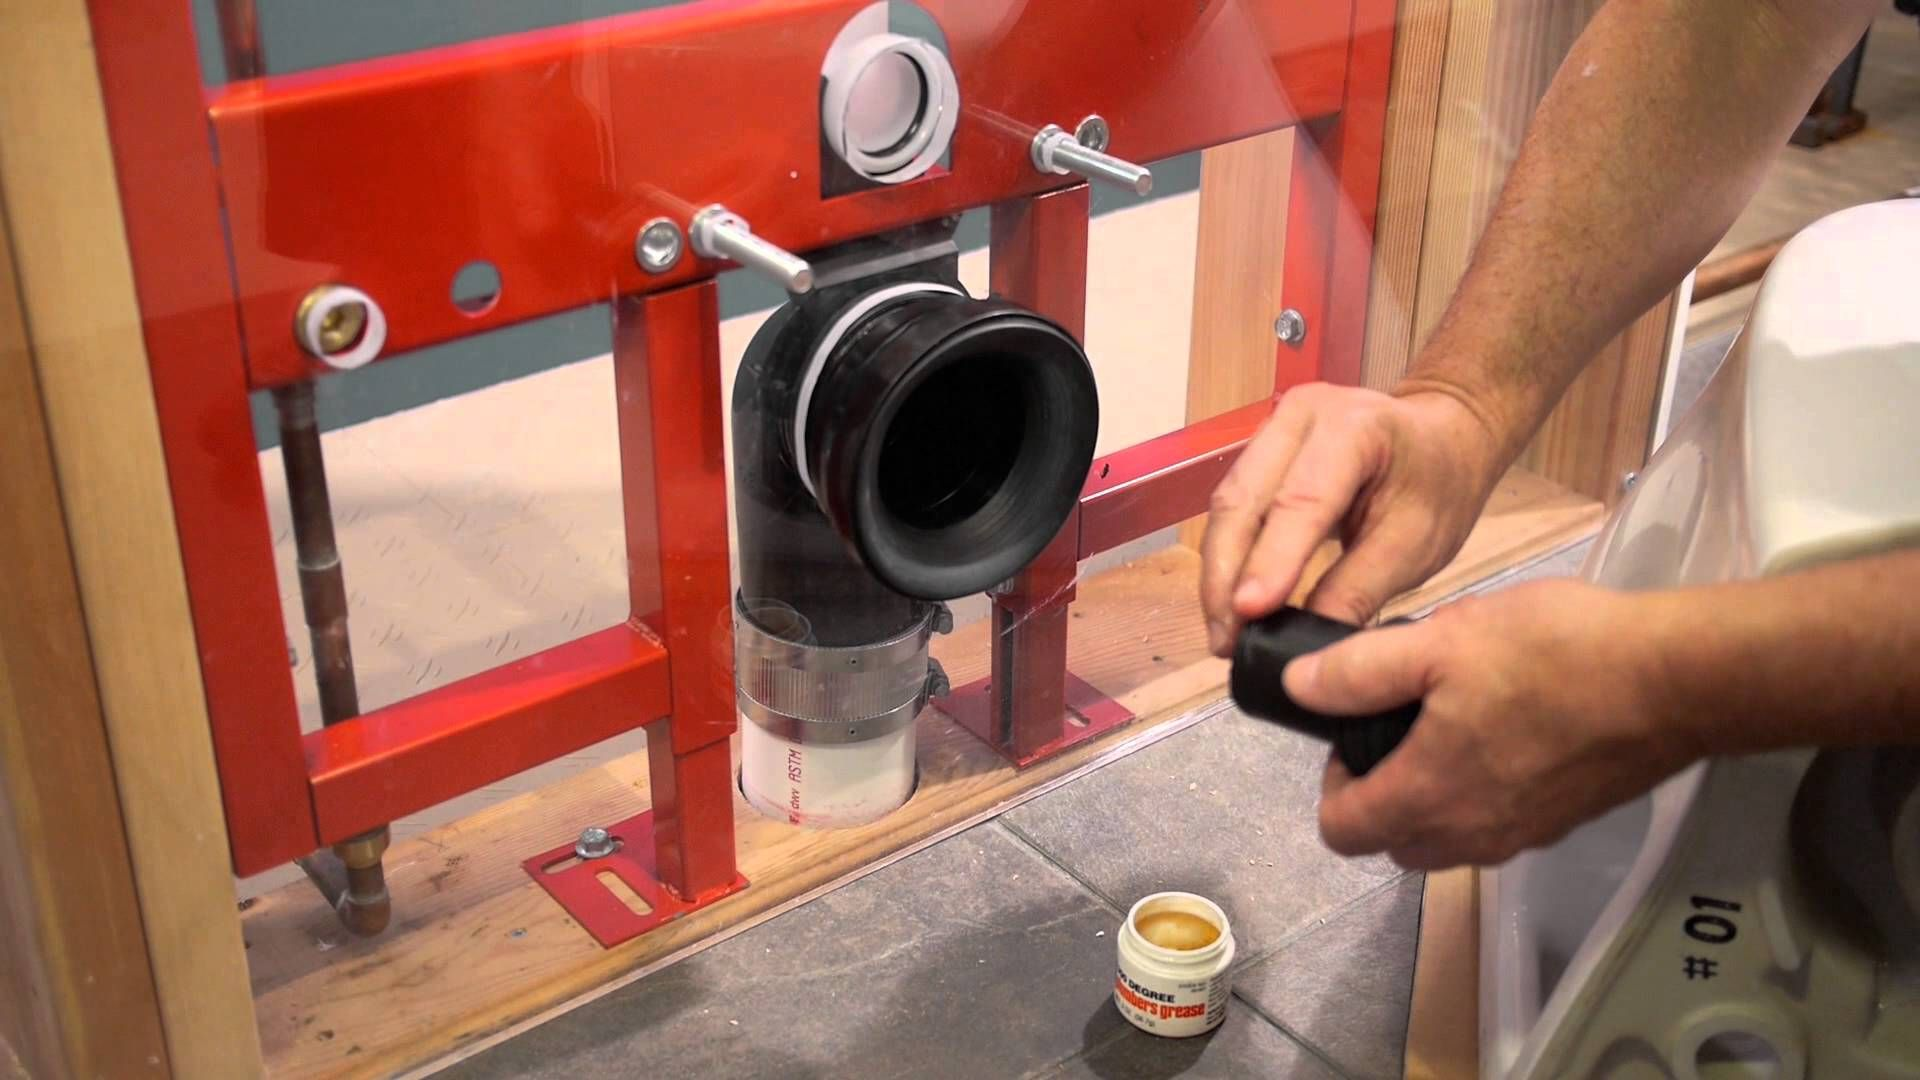 Detailed Instructions On Installing The Aquia Or Maris Toilet With The Toto In Wall Tank System Toilet Installation Wall Hung Toilet Wall Mounted Toilet